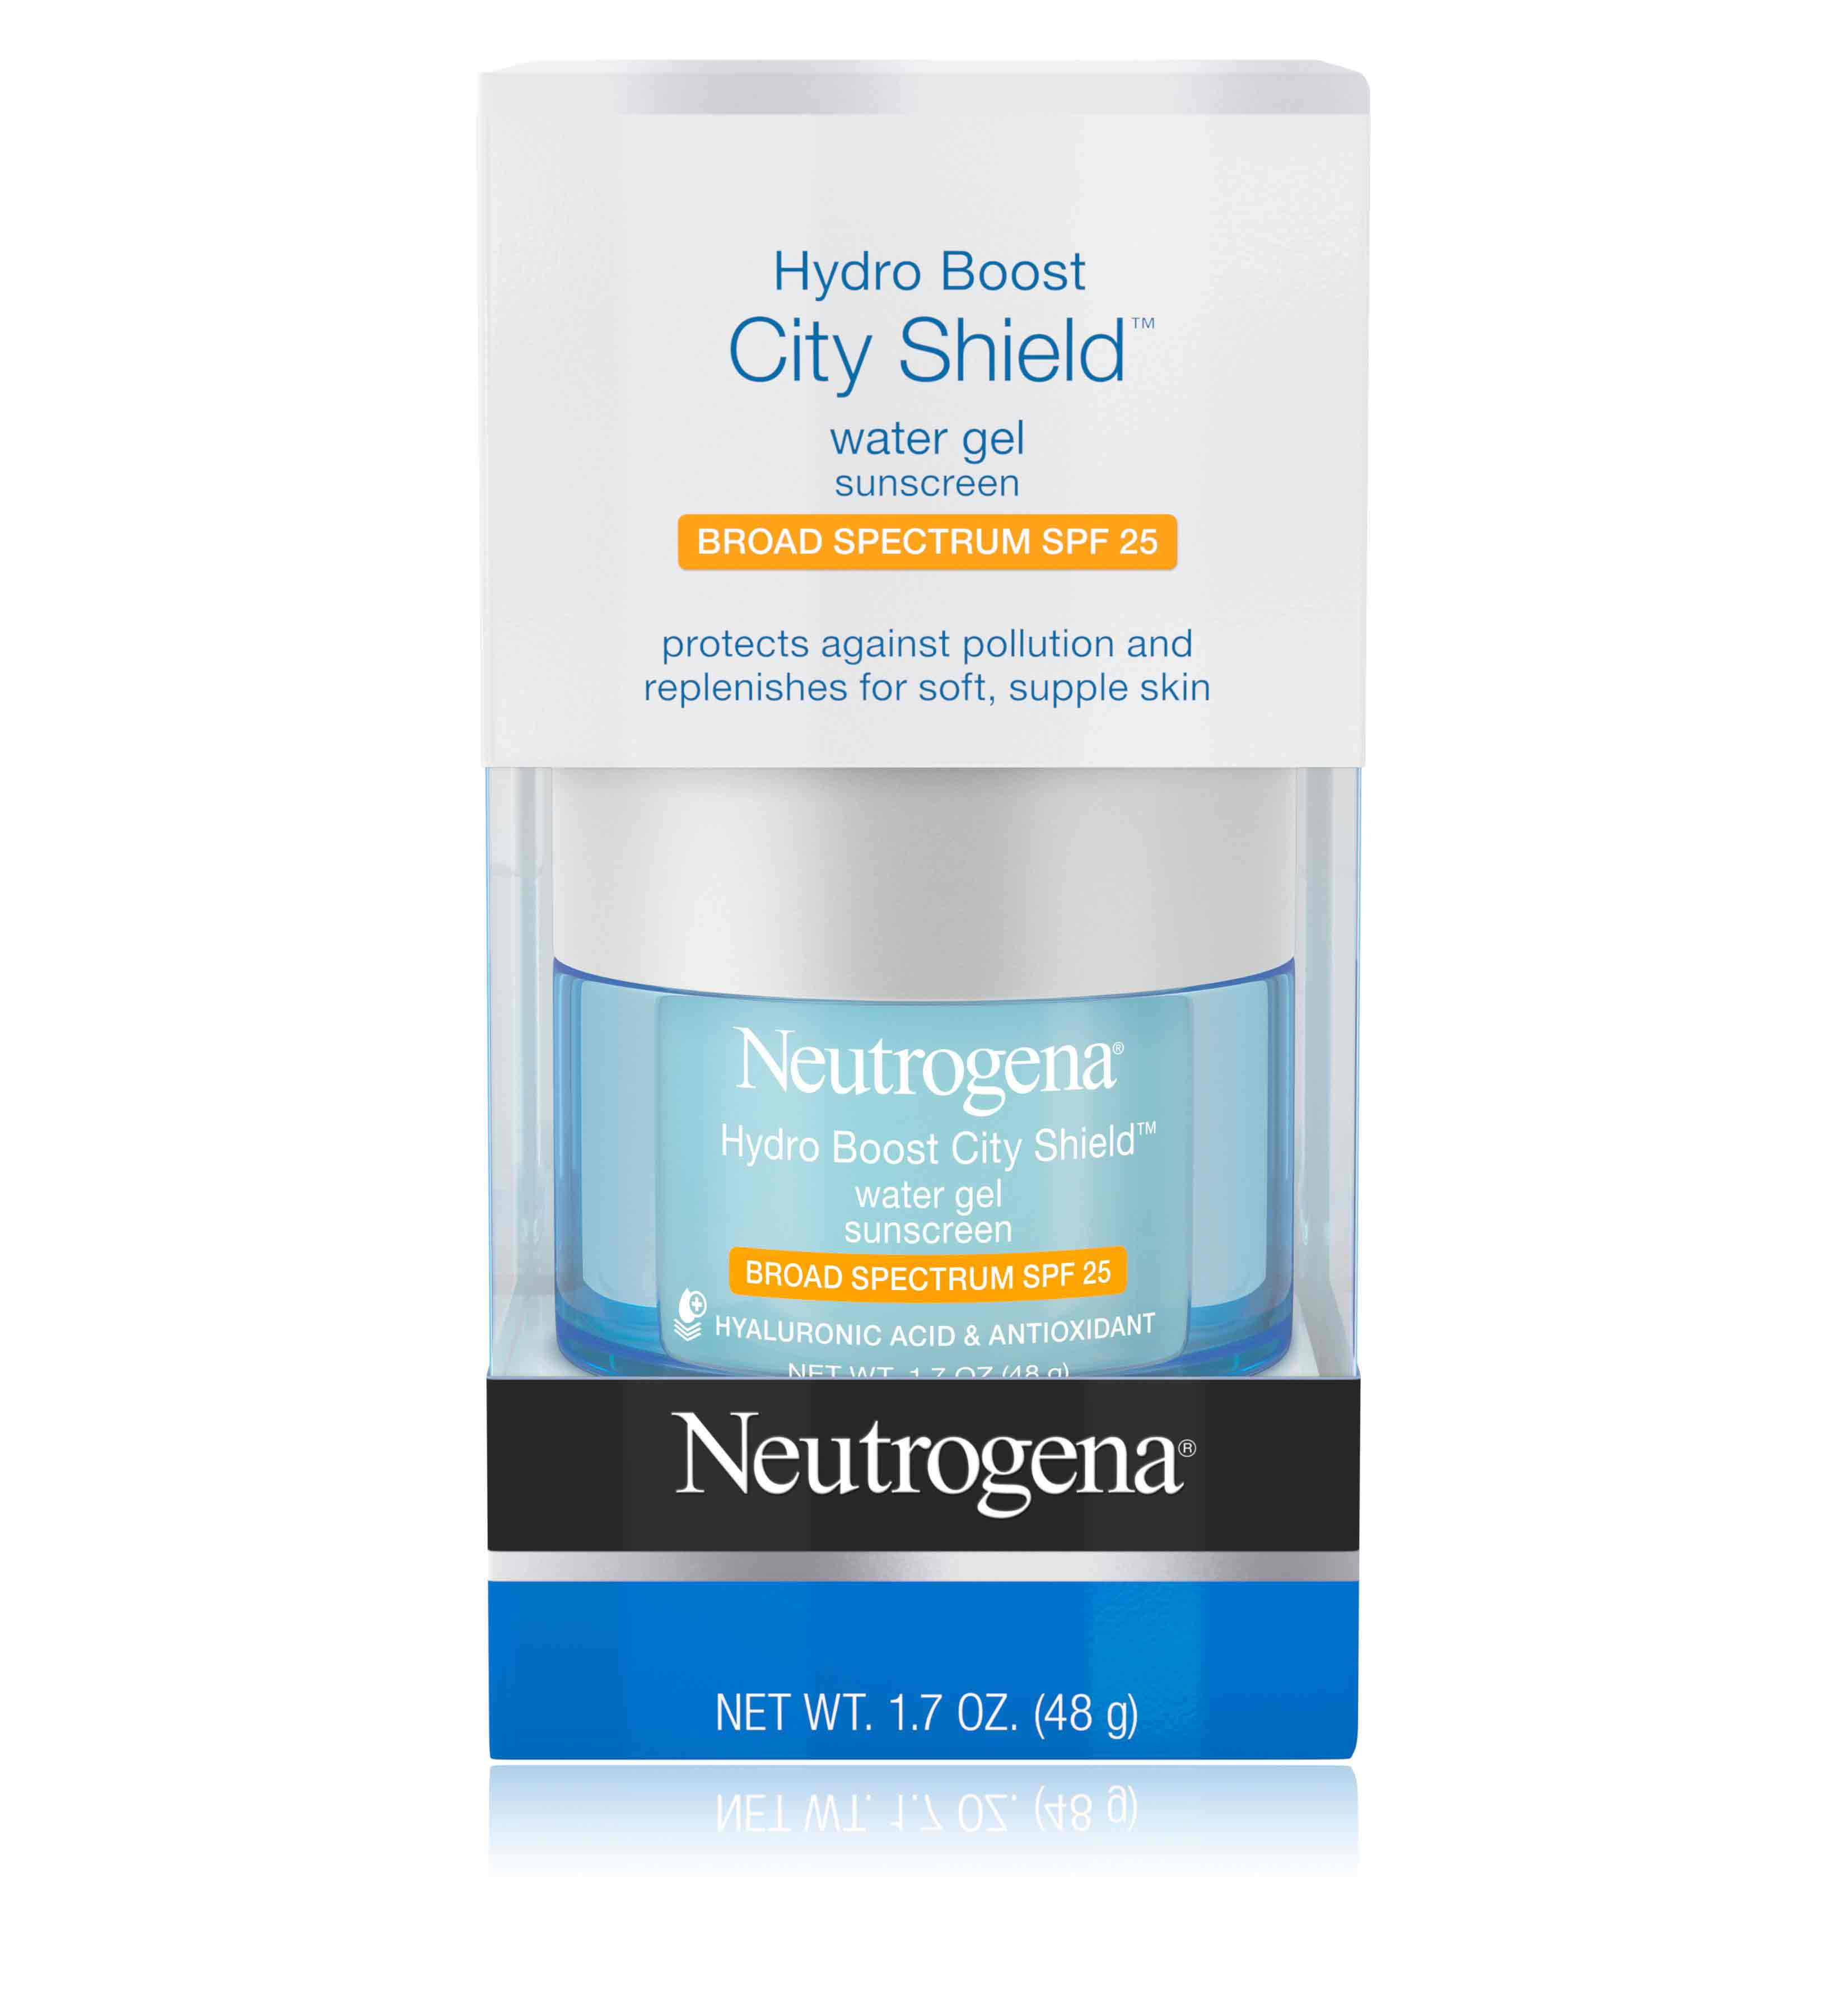 Neutrogena® Hydro Boost City ShieldTM Water Gel Sunscreen Broad Spectrum SPF 25